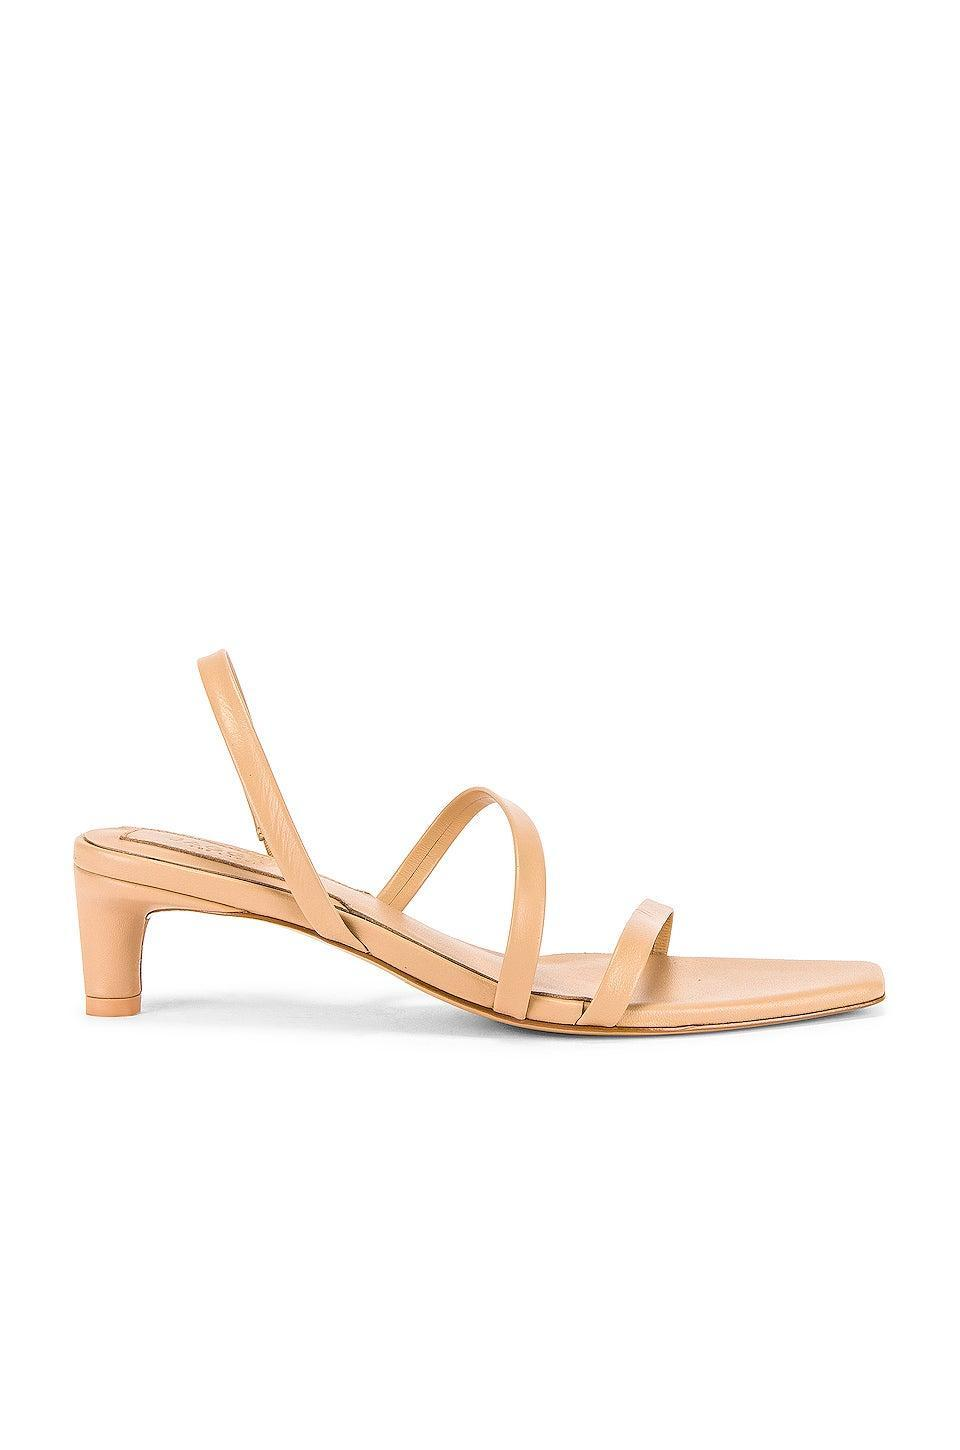 """<br> <br> <strong>Jaggar</strong> Dainty Heel, $, available at <a href=""""https://go.skimresources.com/?id=30283X879131&url=https%3A%2F%2Fwww.revolve.com%2Fjaggar-dainty-heel%2Fdp%2FJAGR-WZ134%2F%3Fd%3DWomens%26page%3D1%26lc%3D10%26itrownum%3D3%26itcurrpage%3D1%26itview%3D05"""" rel=""""nofollow noopener"""" target=""""_blank"""" data-ylk=""""slk:Revolve"""" class=""""link rapid-noclick-resp"""">Revolve</a>"""